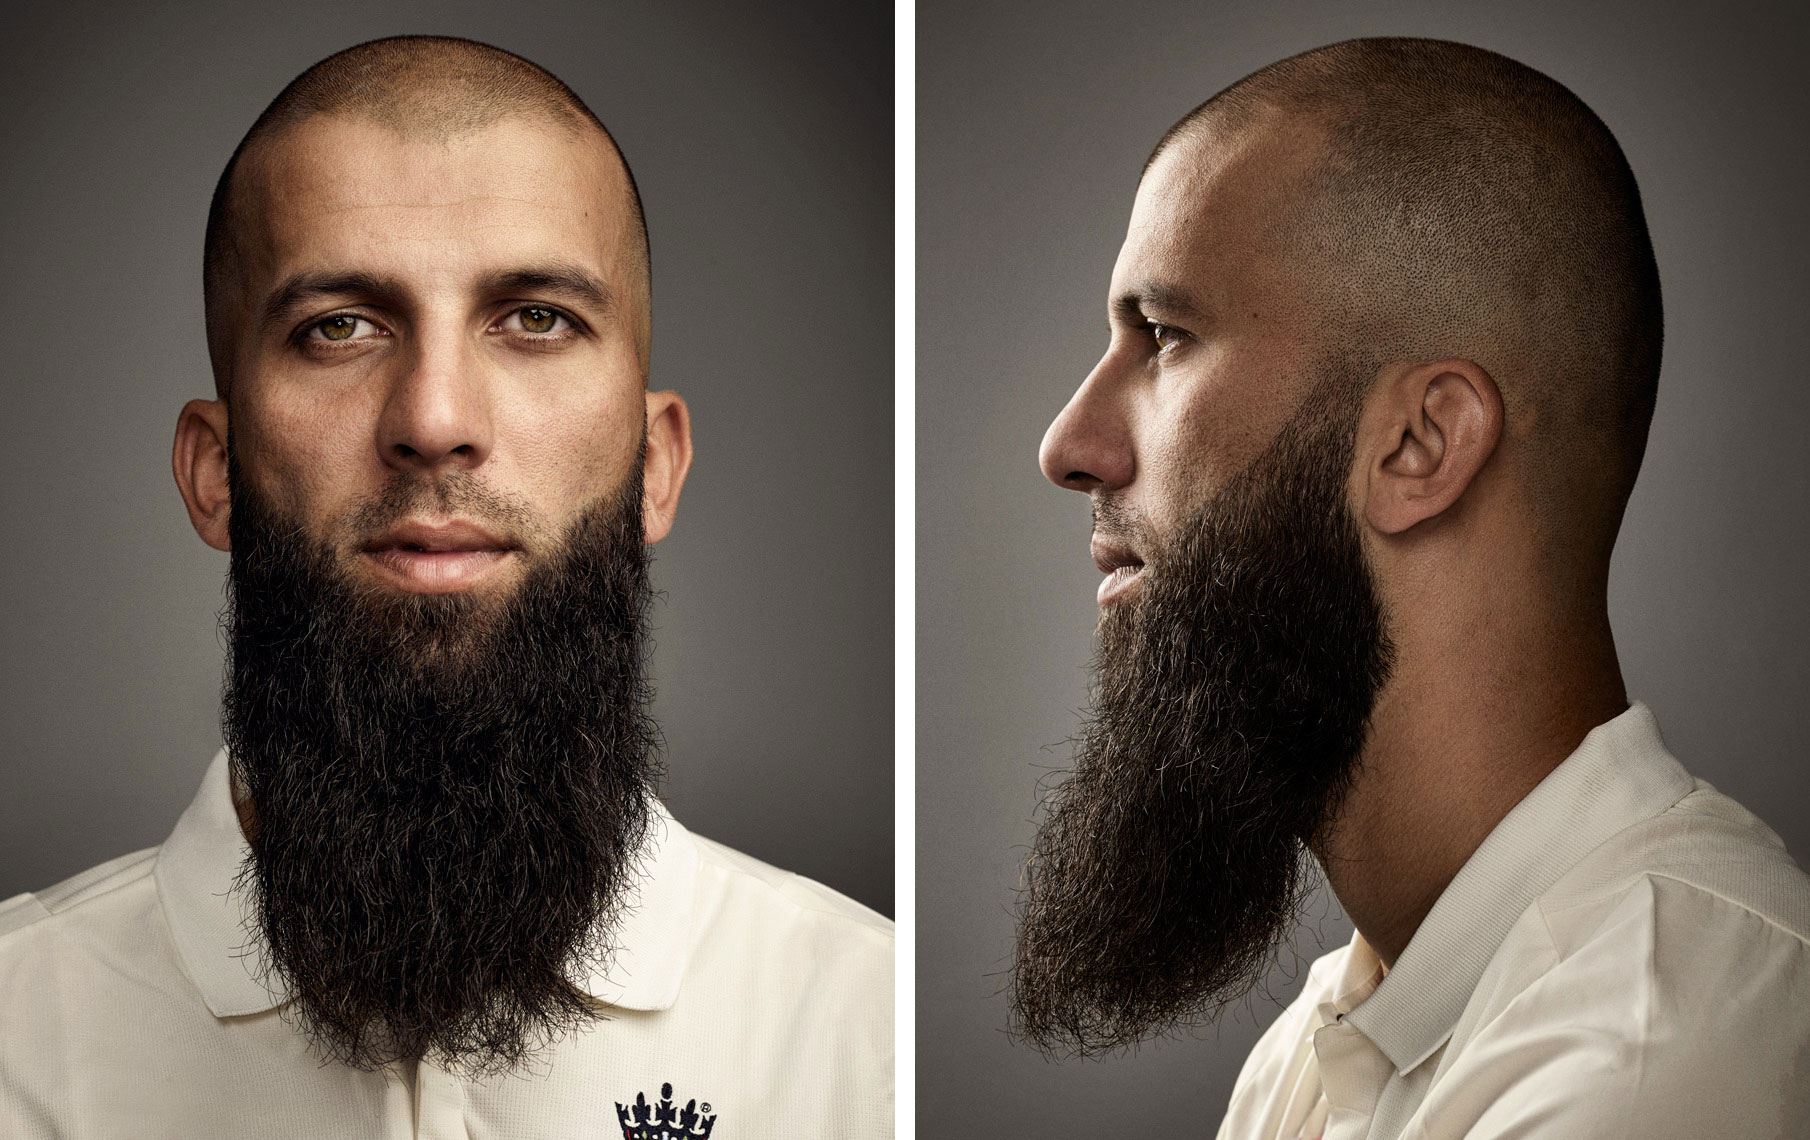 Cricketer Moeen Ali photographed for Times Magazine